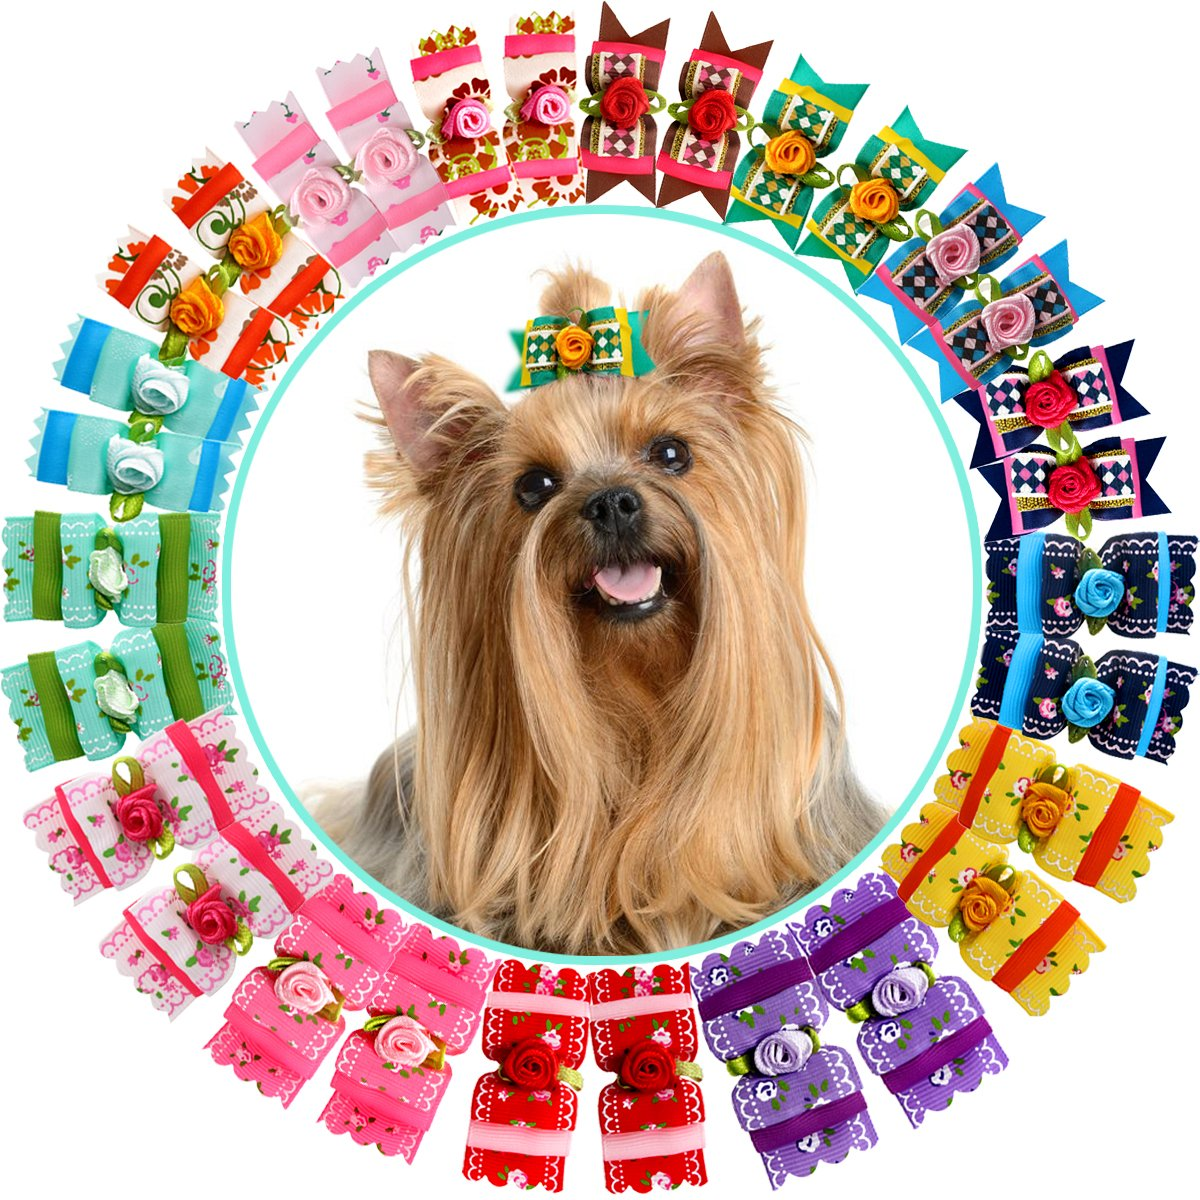 YOY 30PCS/15 Pairs Adorable Grosgrain Ribbon Pet Dog Hair Bows with Rubber Bands - Puppy Topknot Cat Kitty Doggy Grooming Hair Accessories Bow knots Headdress Flowers Set for Groomer